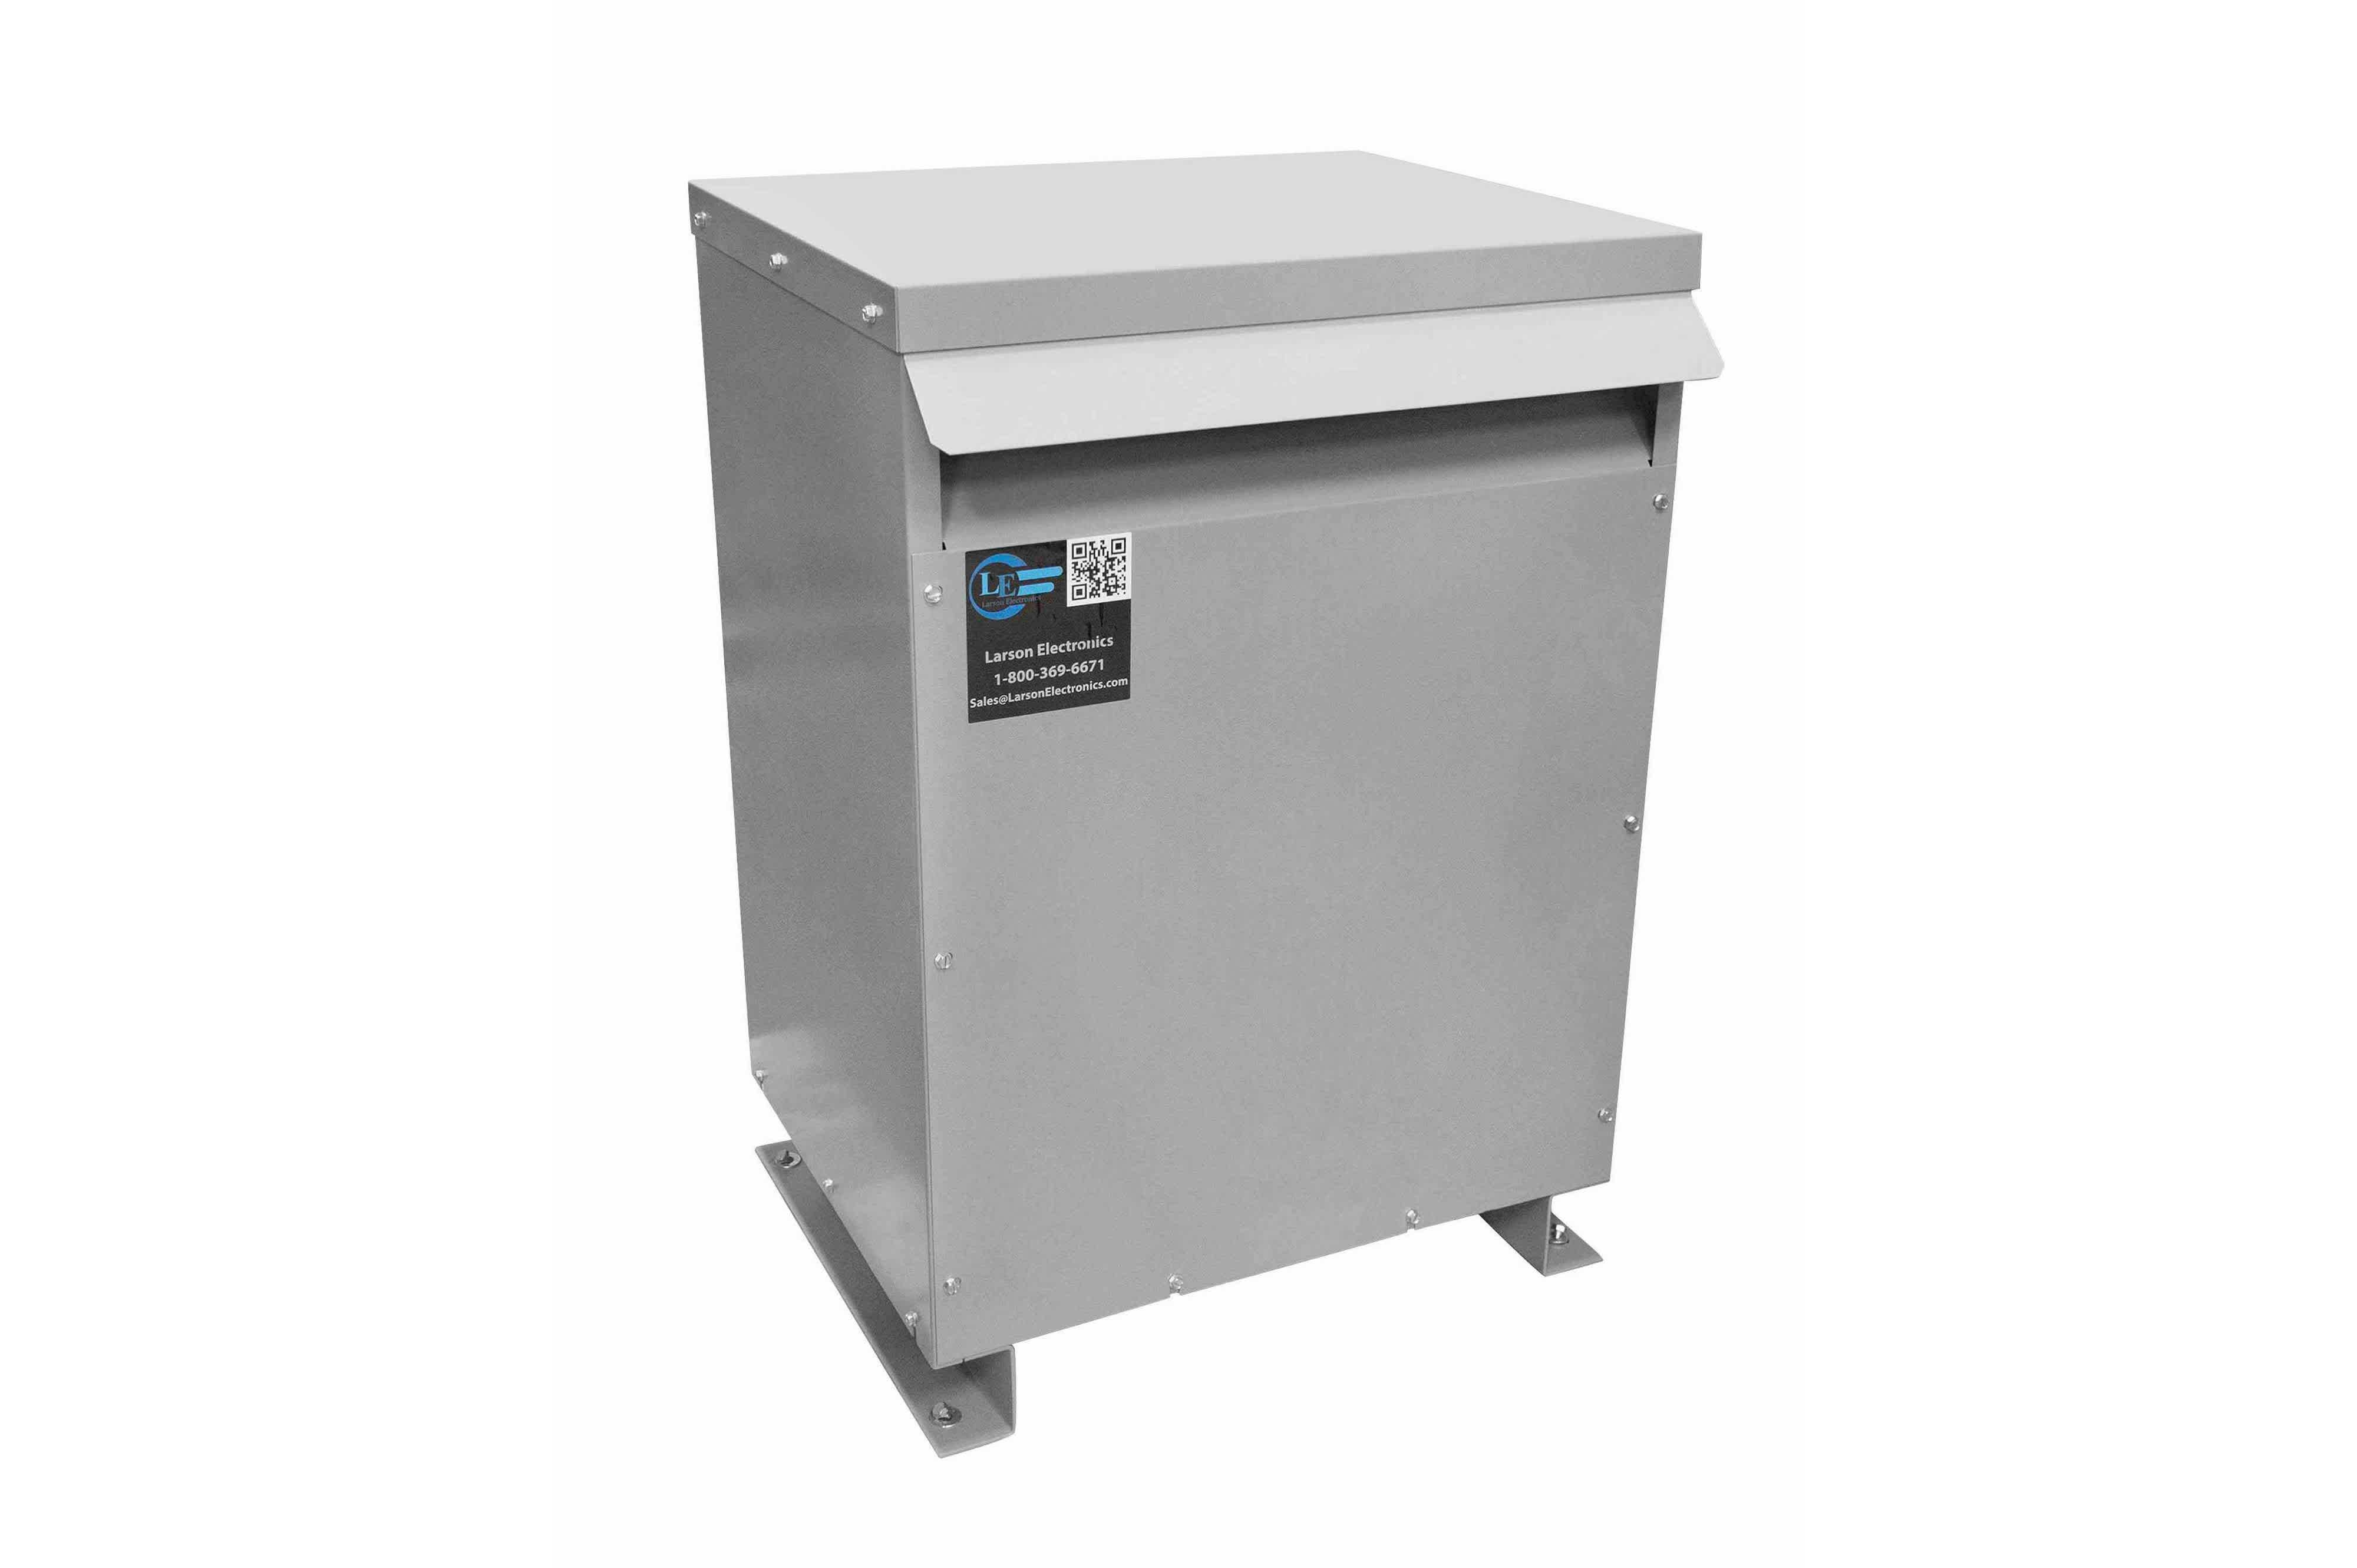 175 kVA 3PH Isolation Transformer, 575V Delta Primary, 208V Delta Secondary, N3R, Ventilated, 60 Hz